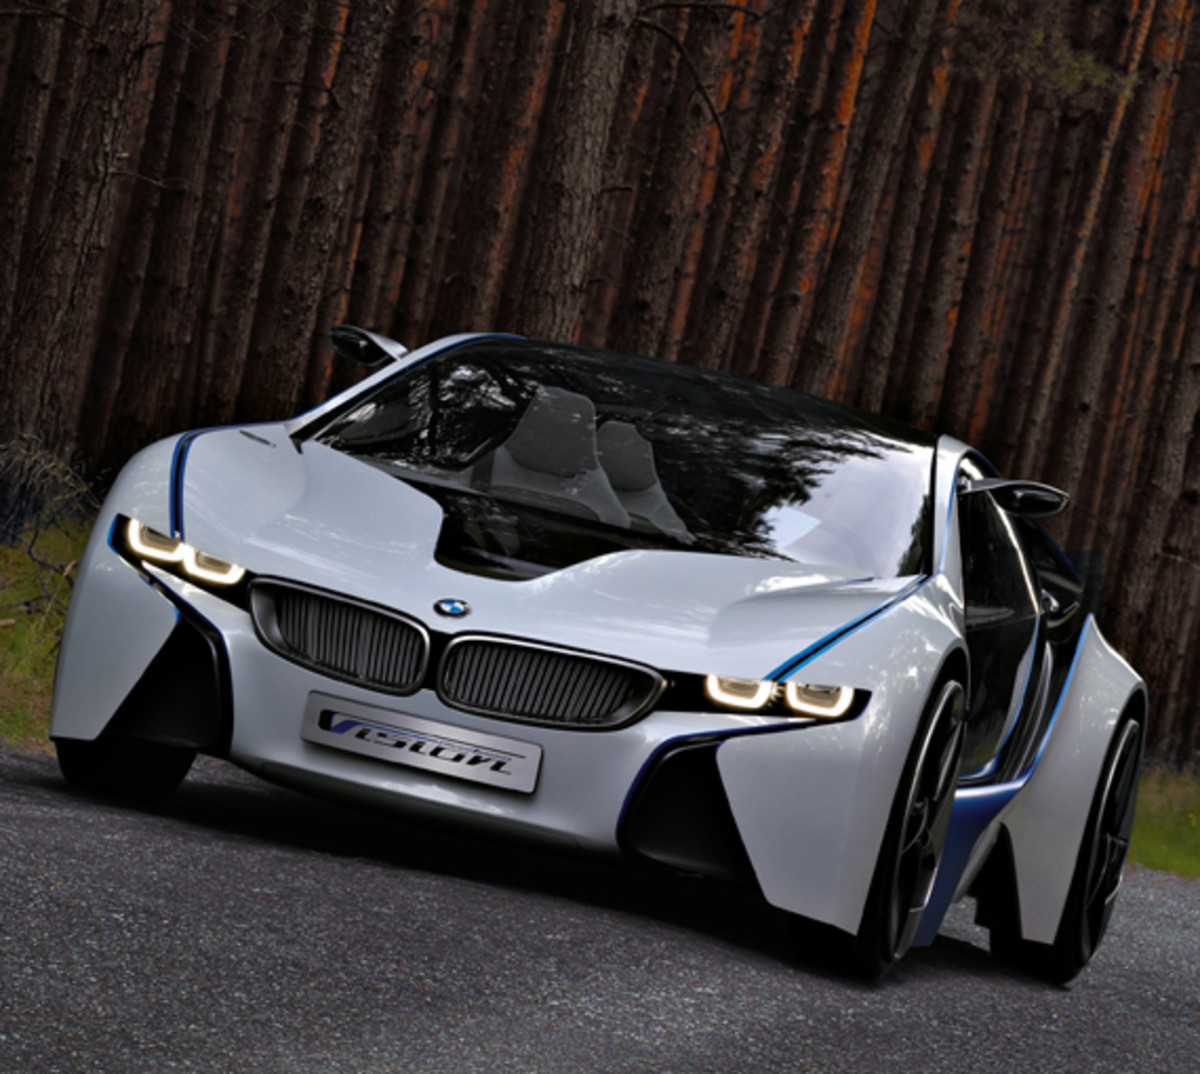 BMW-Vision-EfficientDynamics-woods-01